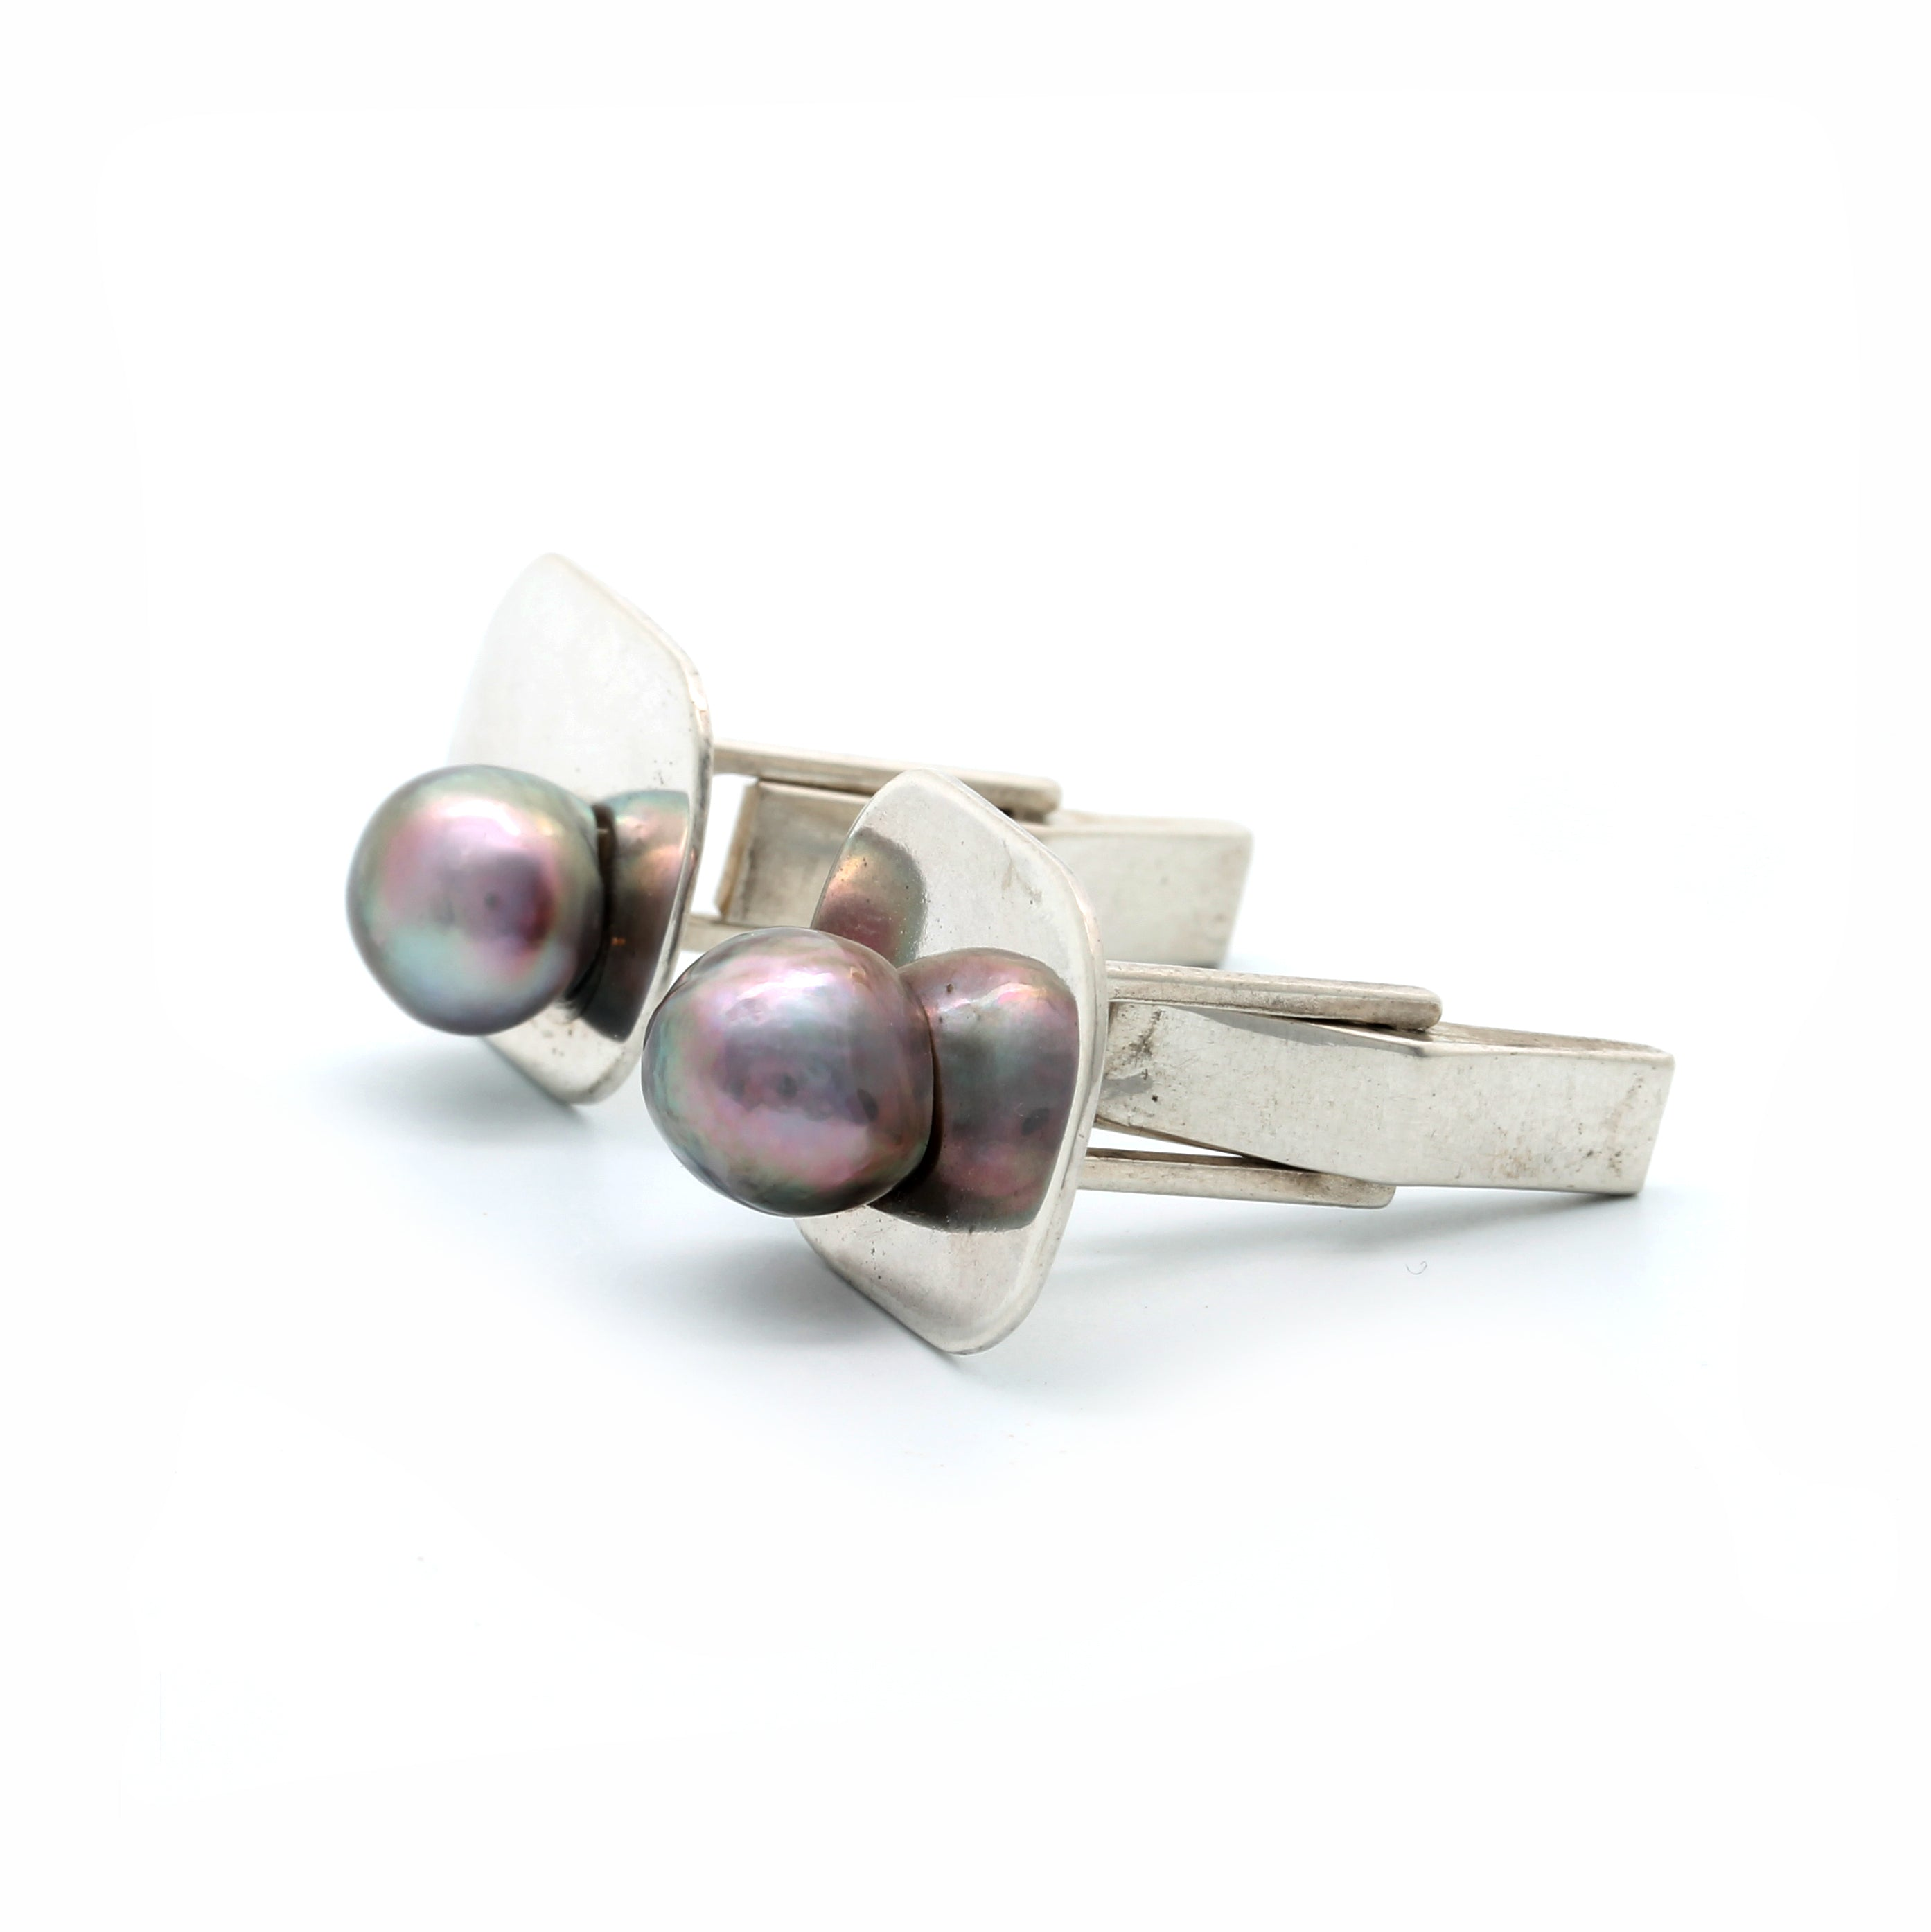 Silver Cufflinks with Sea of Cortez Pearls